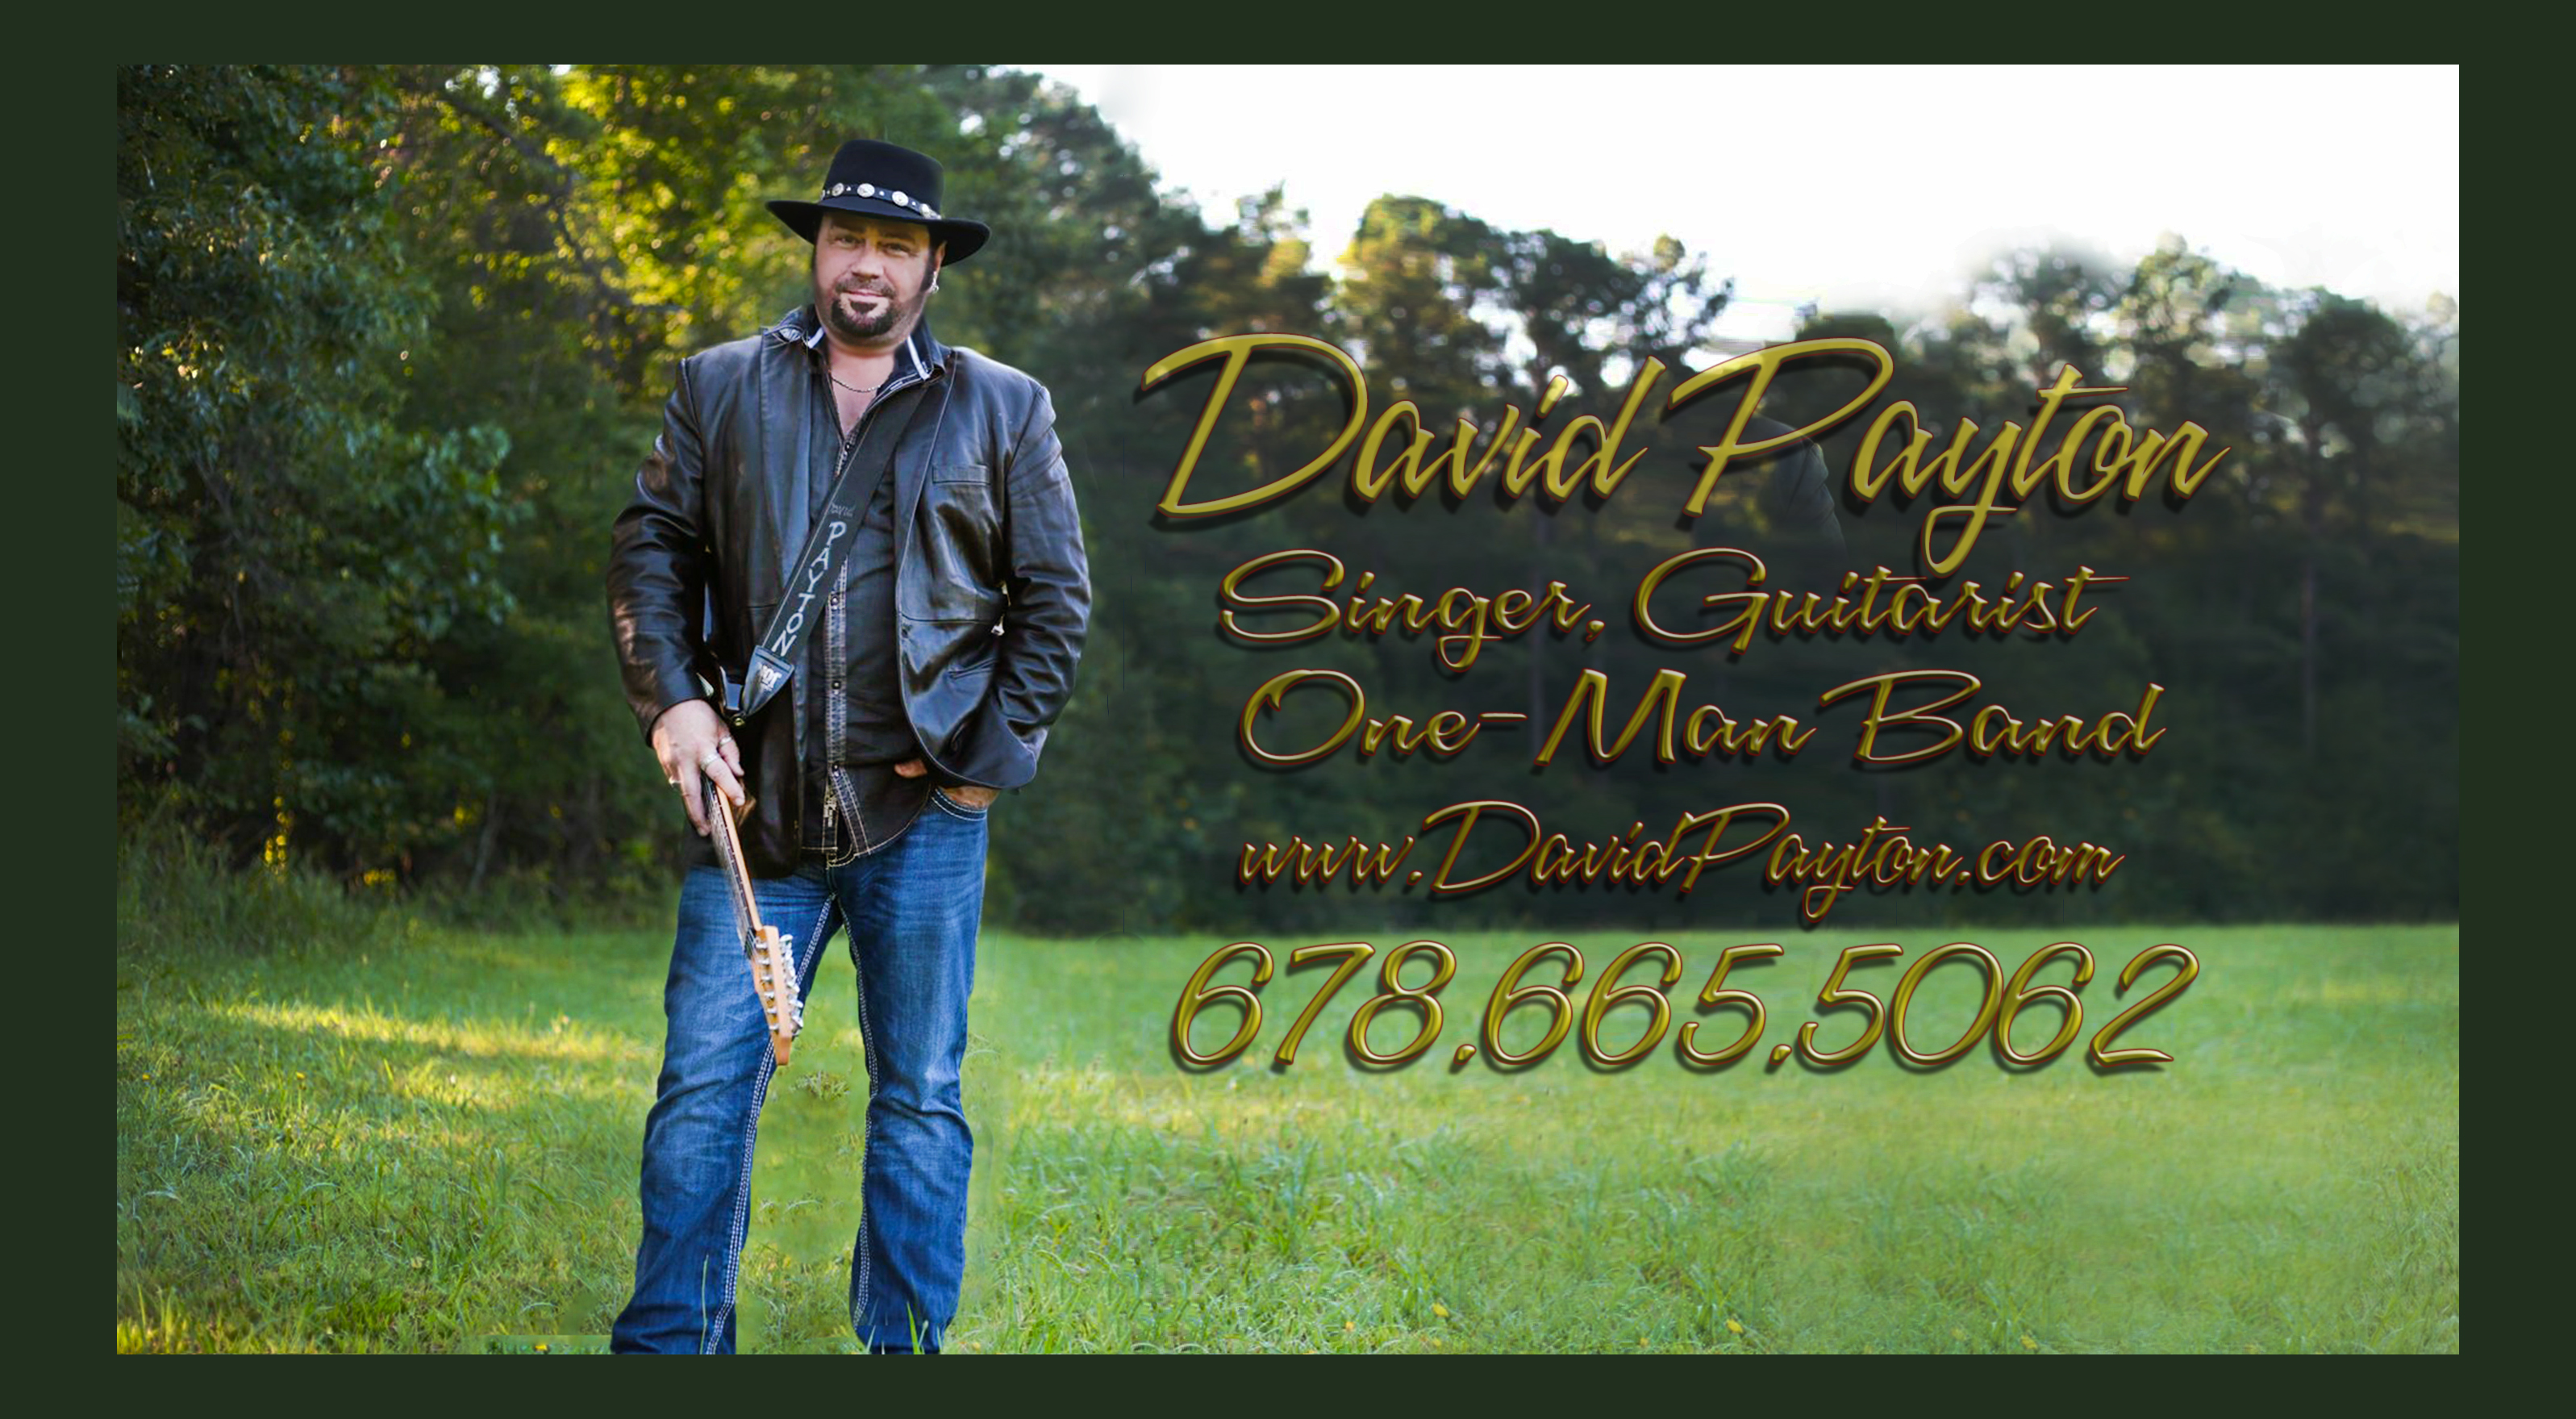 David Payton, singer, guitars, one-man band, songwriter, actor